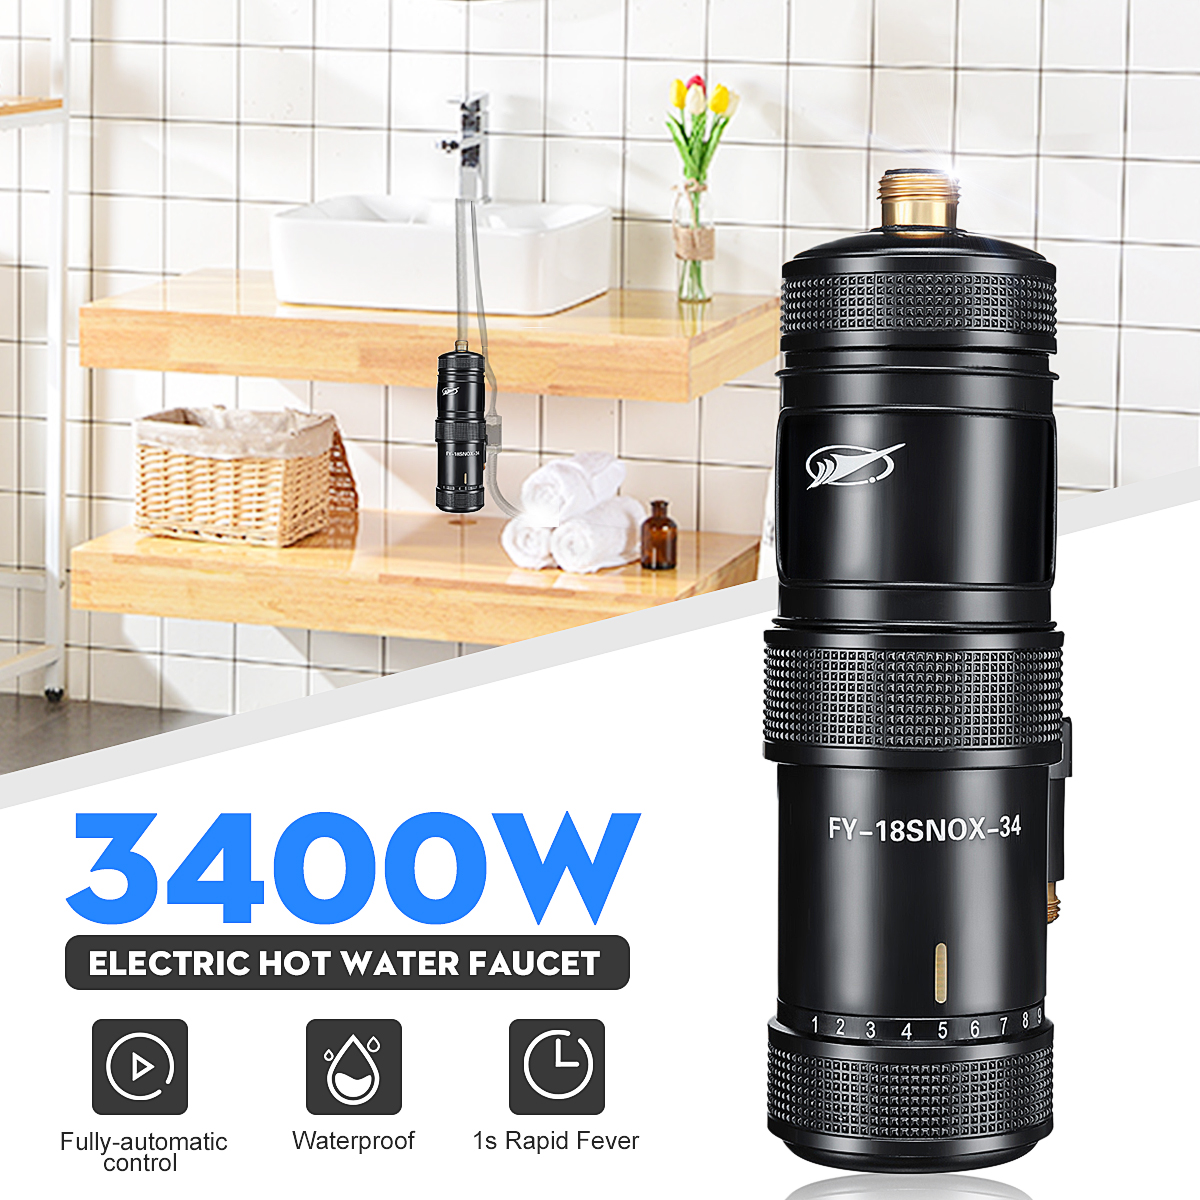 3400W  Electric Faucet Water Heater Instant Heating Electric Hot Kitchen Hot Water System Shower Tap Bathroom Kitchen